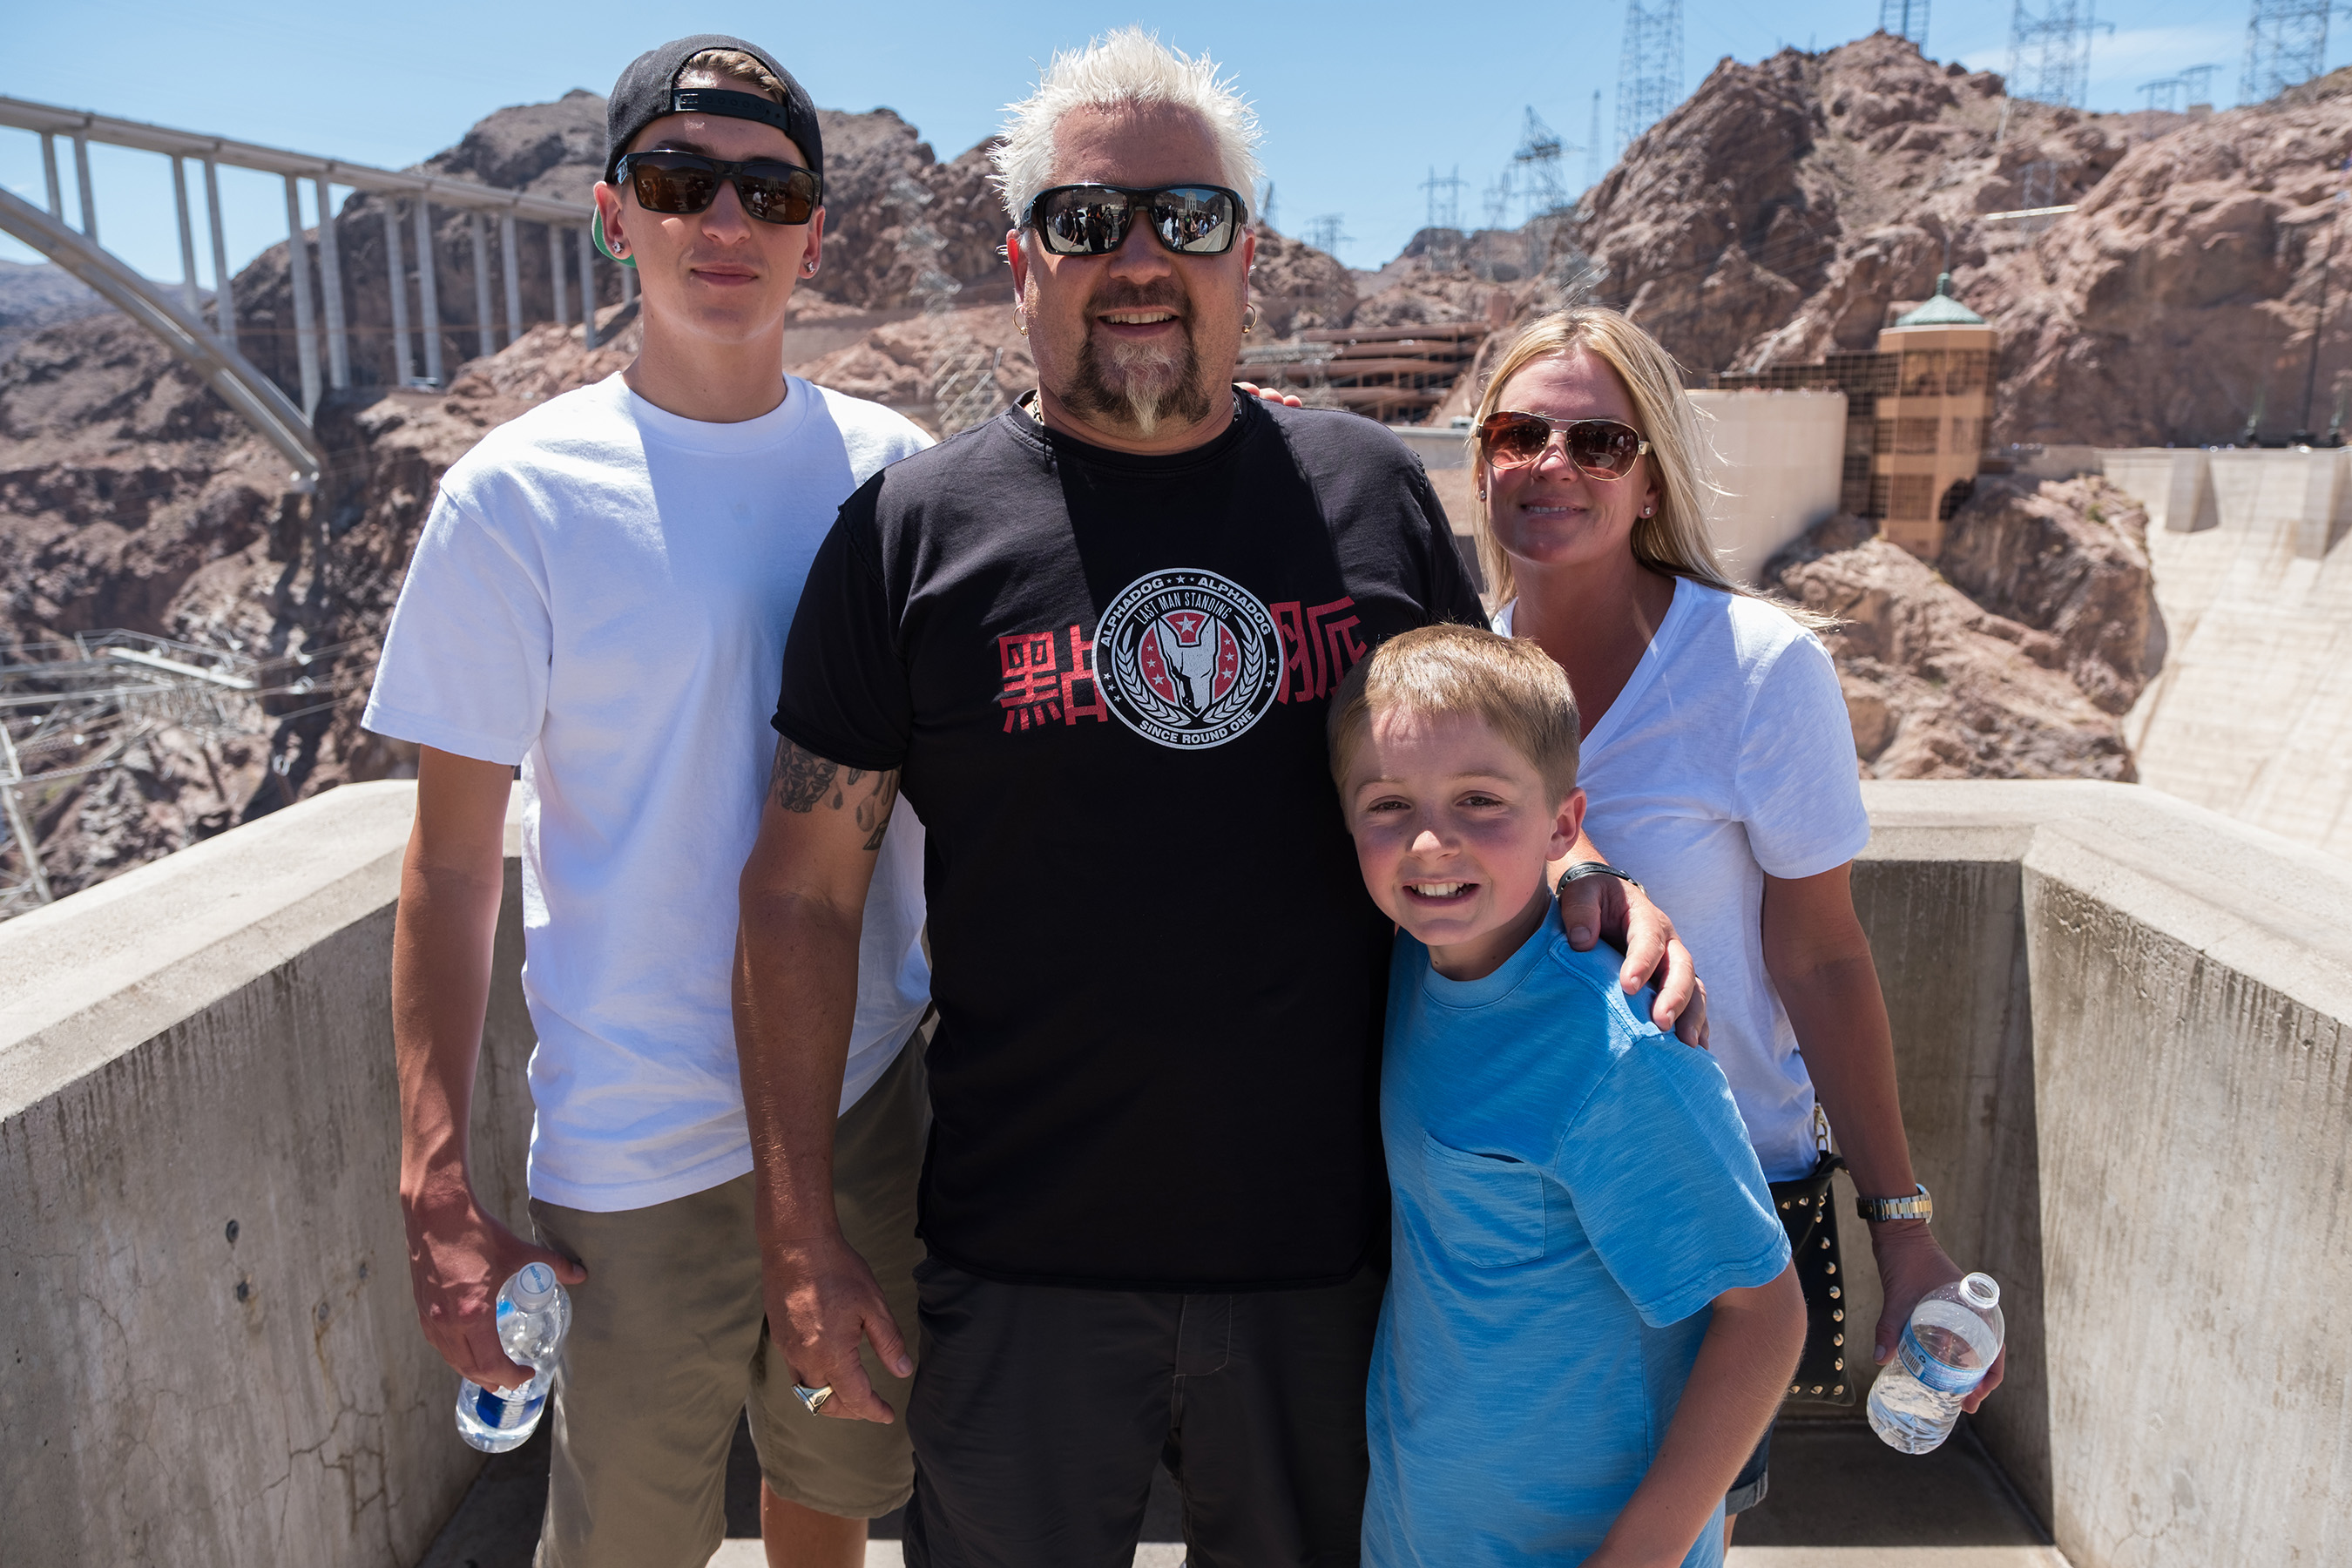 Hunter, Guy, Ryder and Lori on Food Network's Guy's Family Road Trip